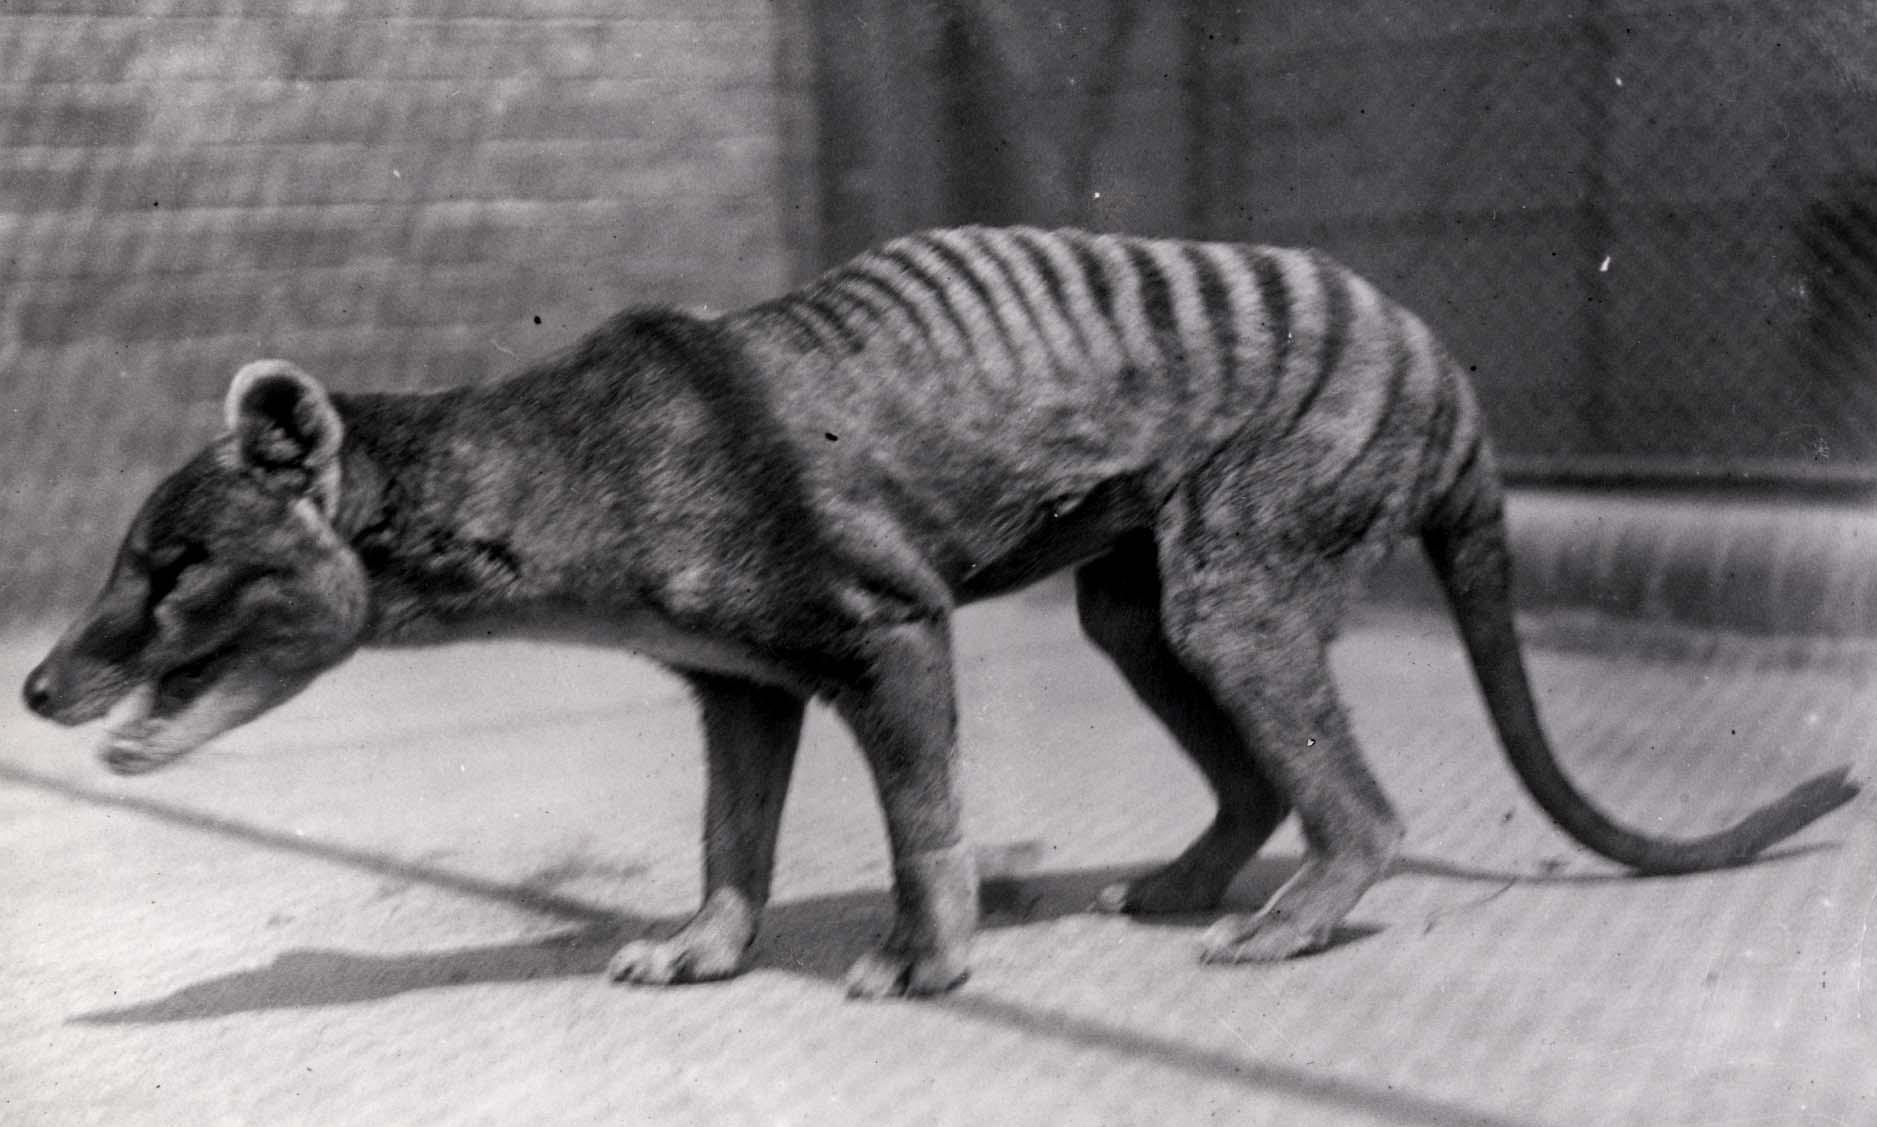 Why don't we grieve for extinct species?